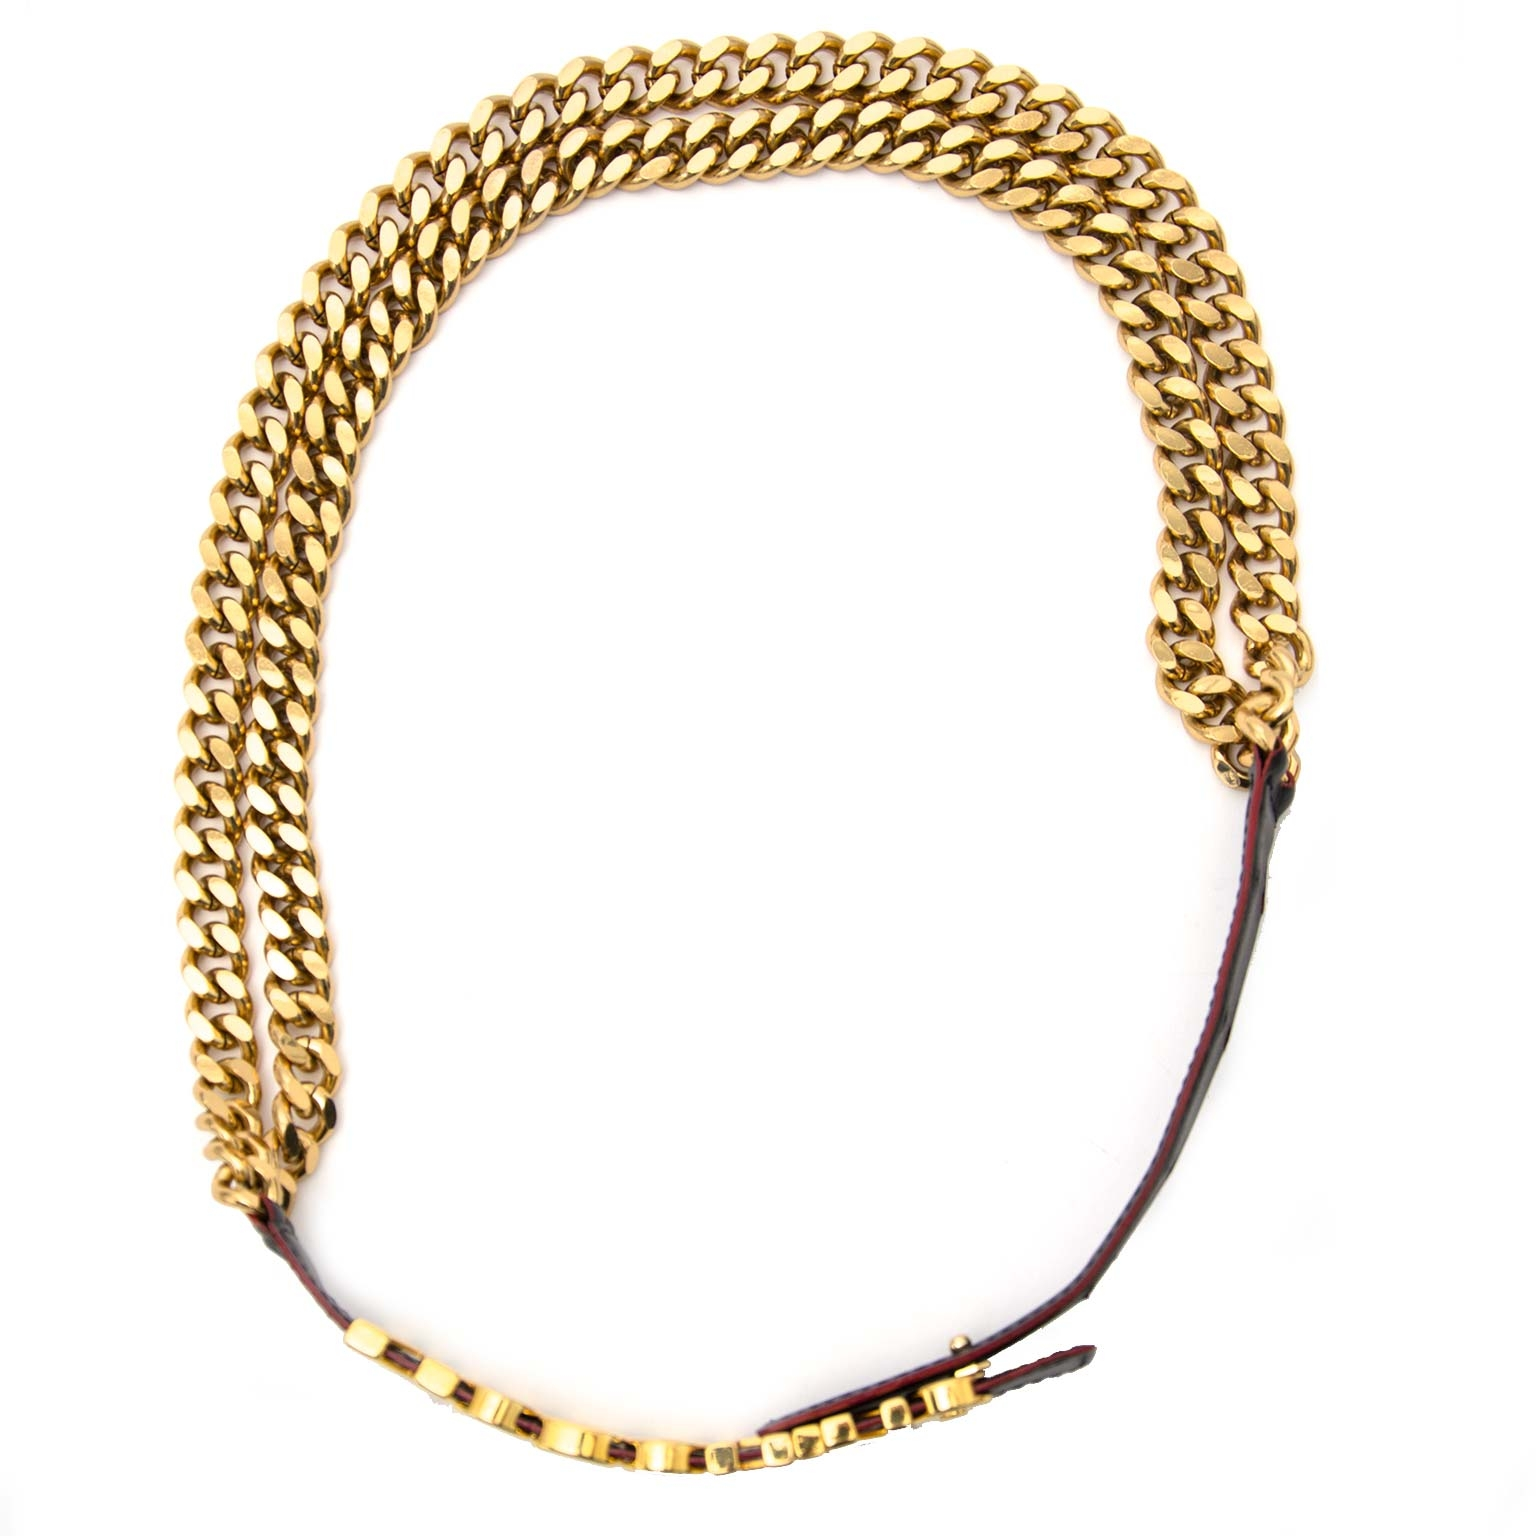 Moschino Gold Toned Chain Belt now online at labellov.com for the best price